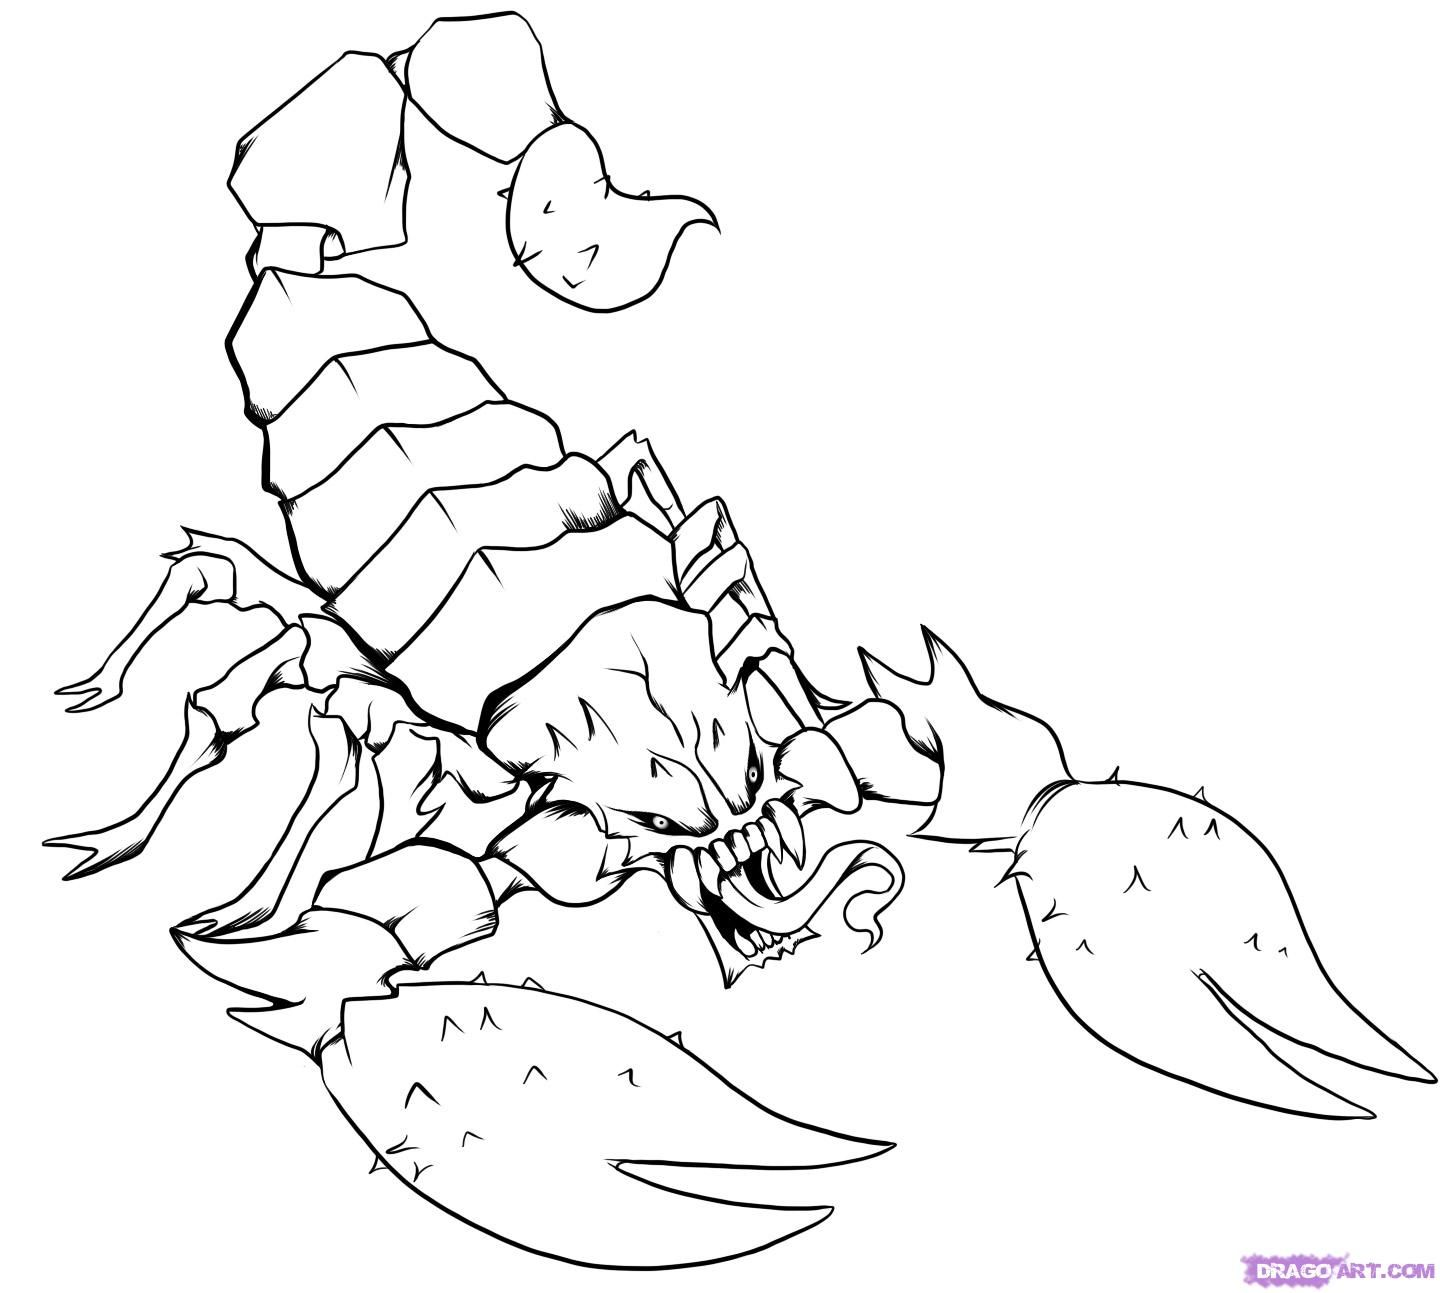 Coloring pages · step 7 online drawing scorpion art lessons zodiac beautiful body body